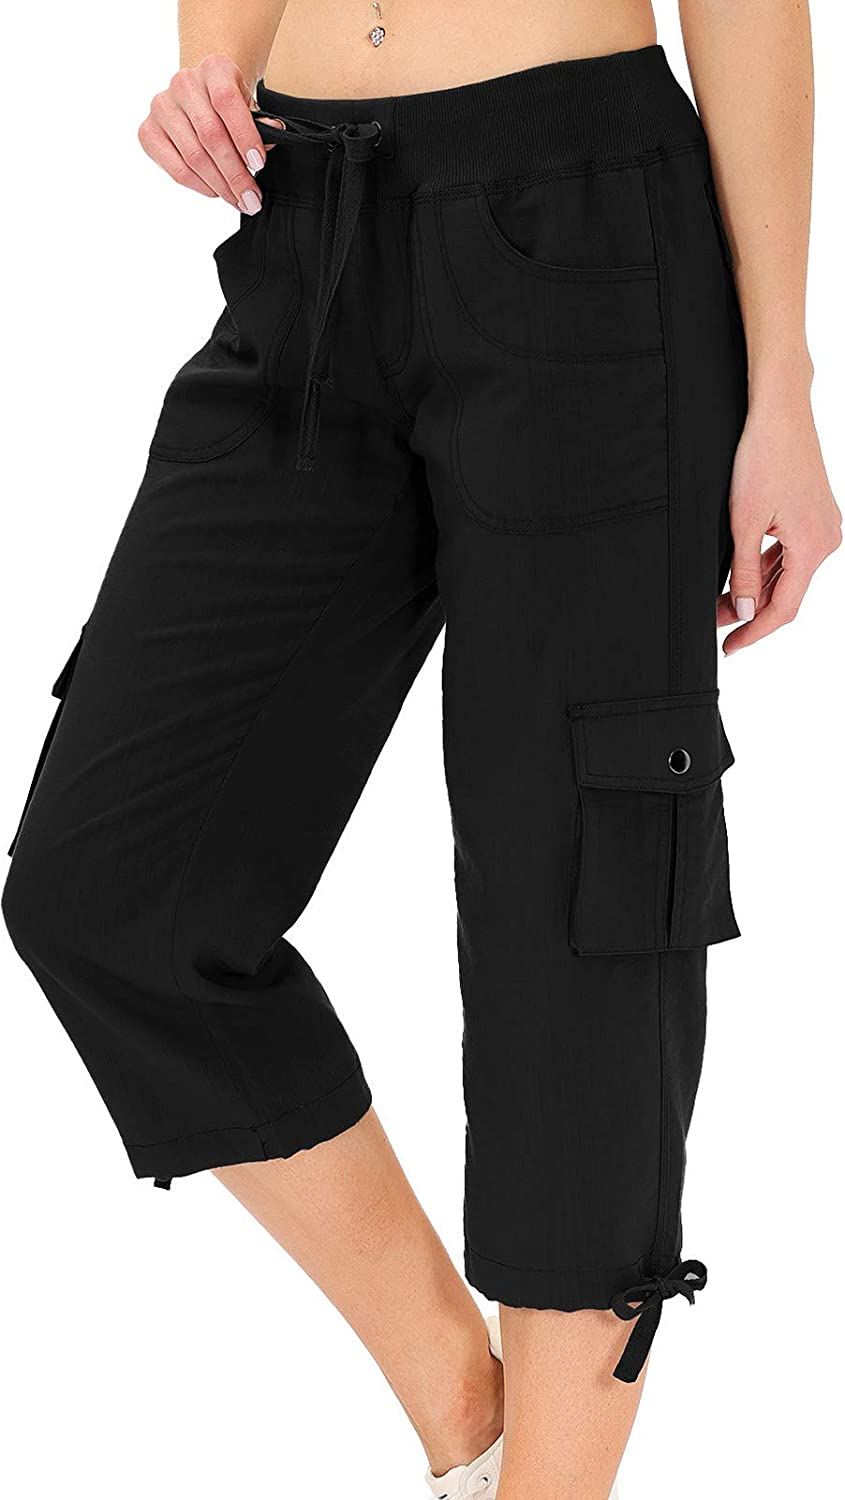 Hiking Cargo Shorts Selling for Women Dry Animer and price revision Capri Fit Cam Active Pants